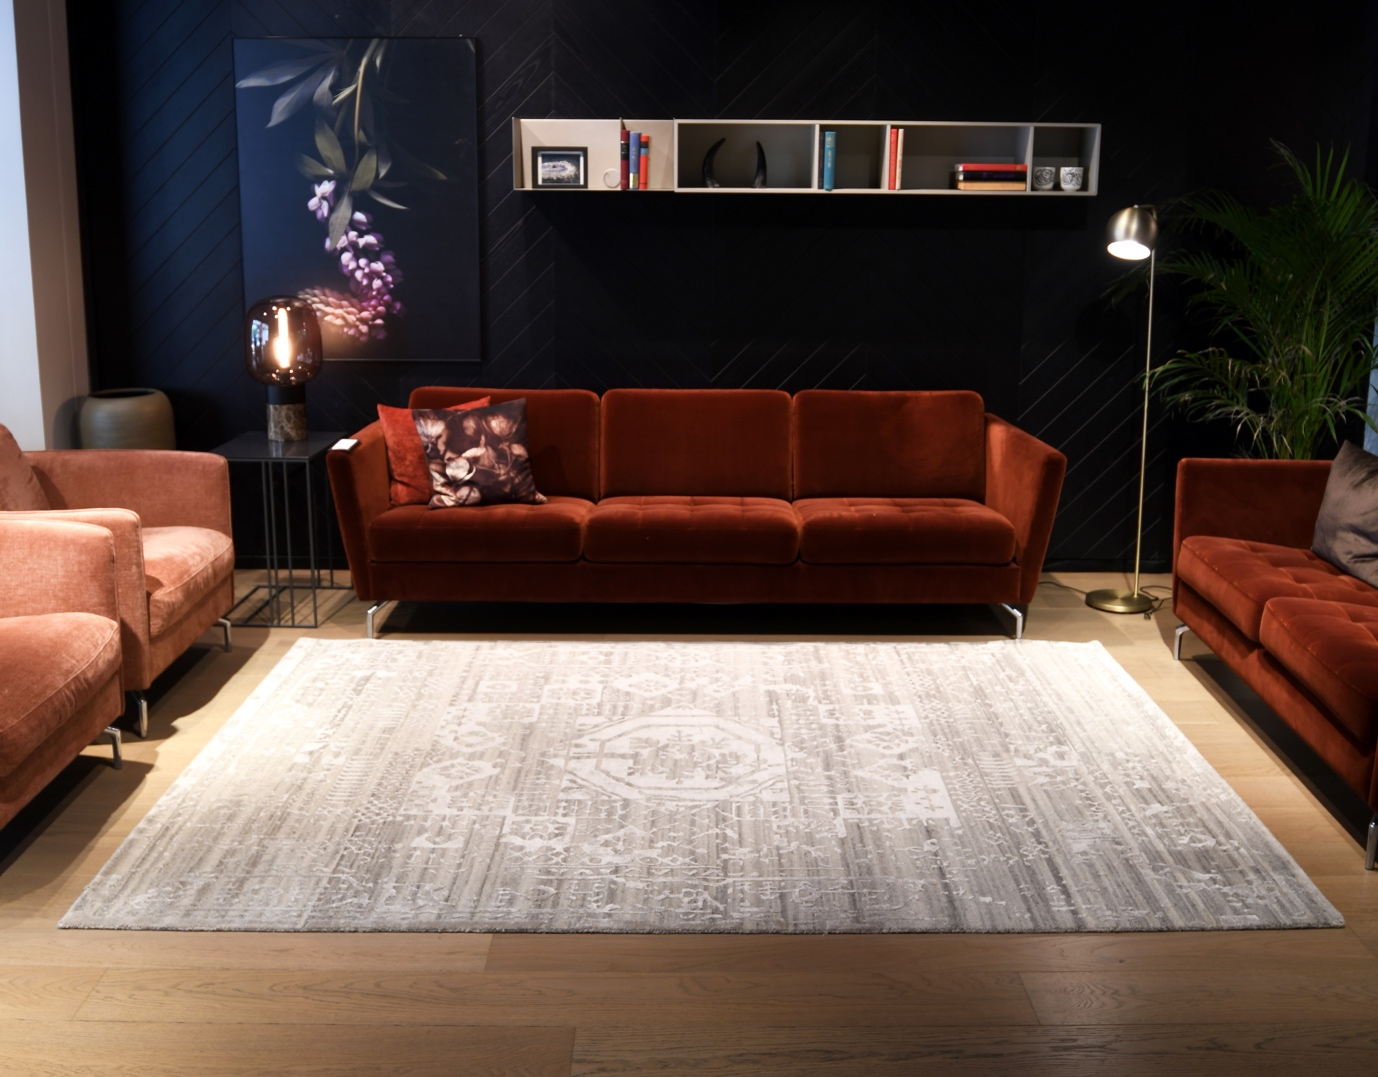 With so many colour and design choices, selecting a rug for your room can be a difficult decision